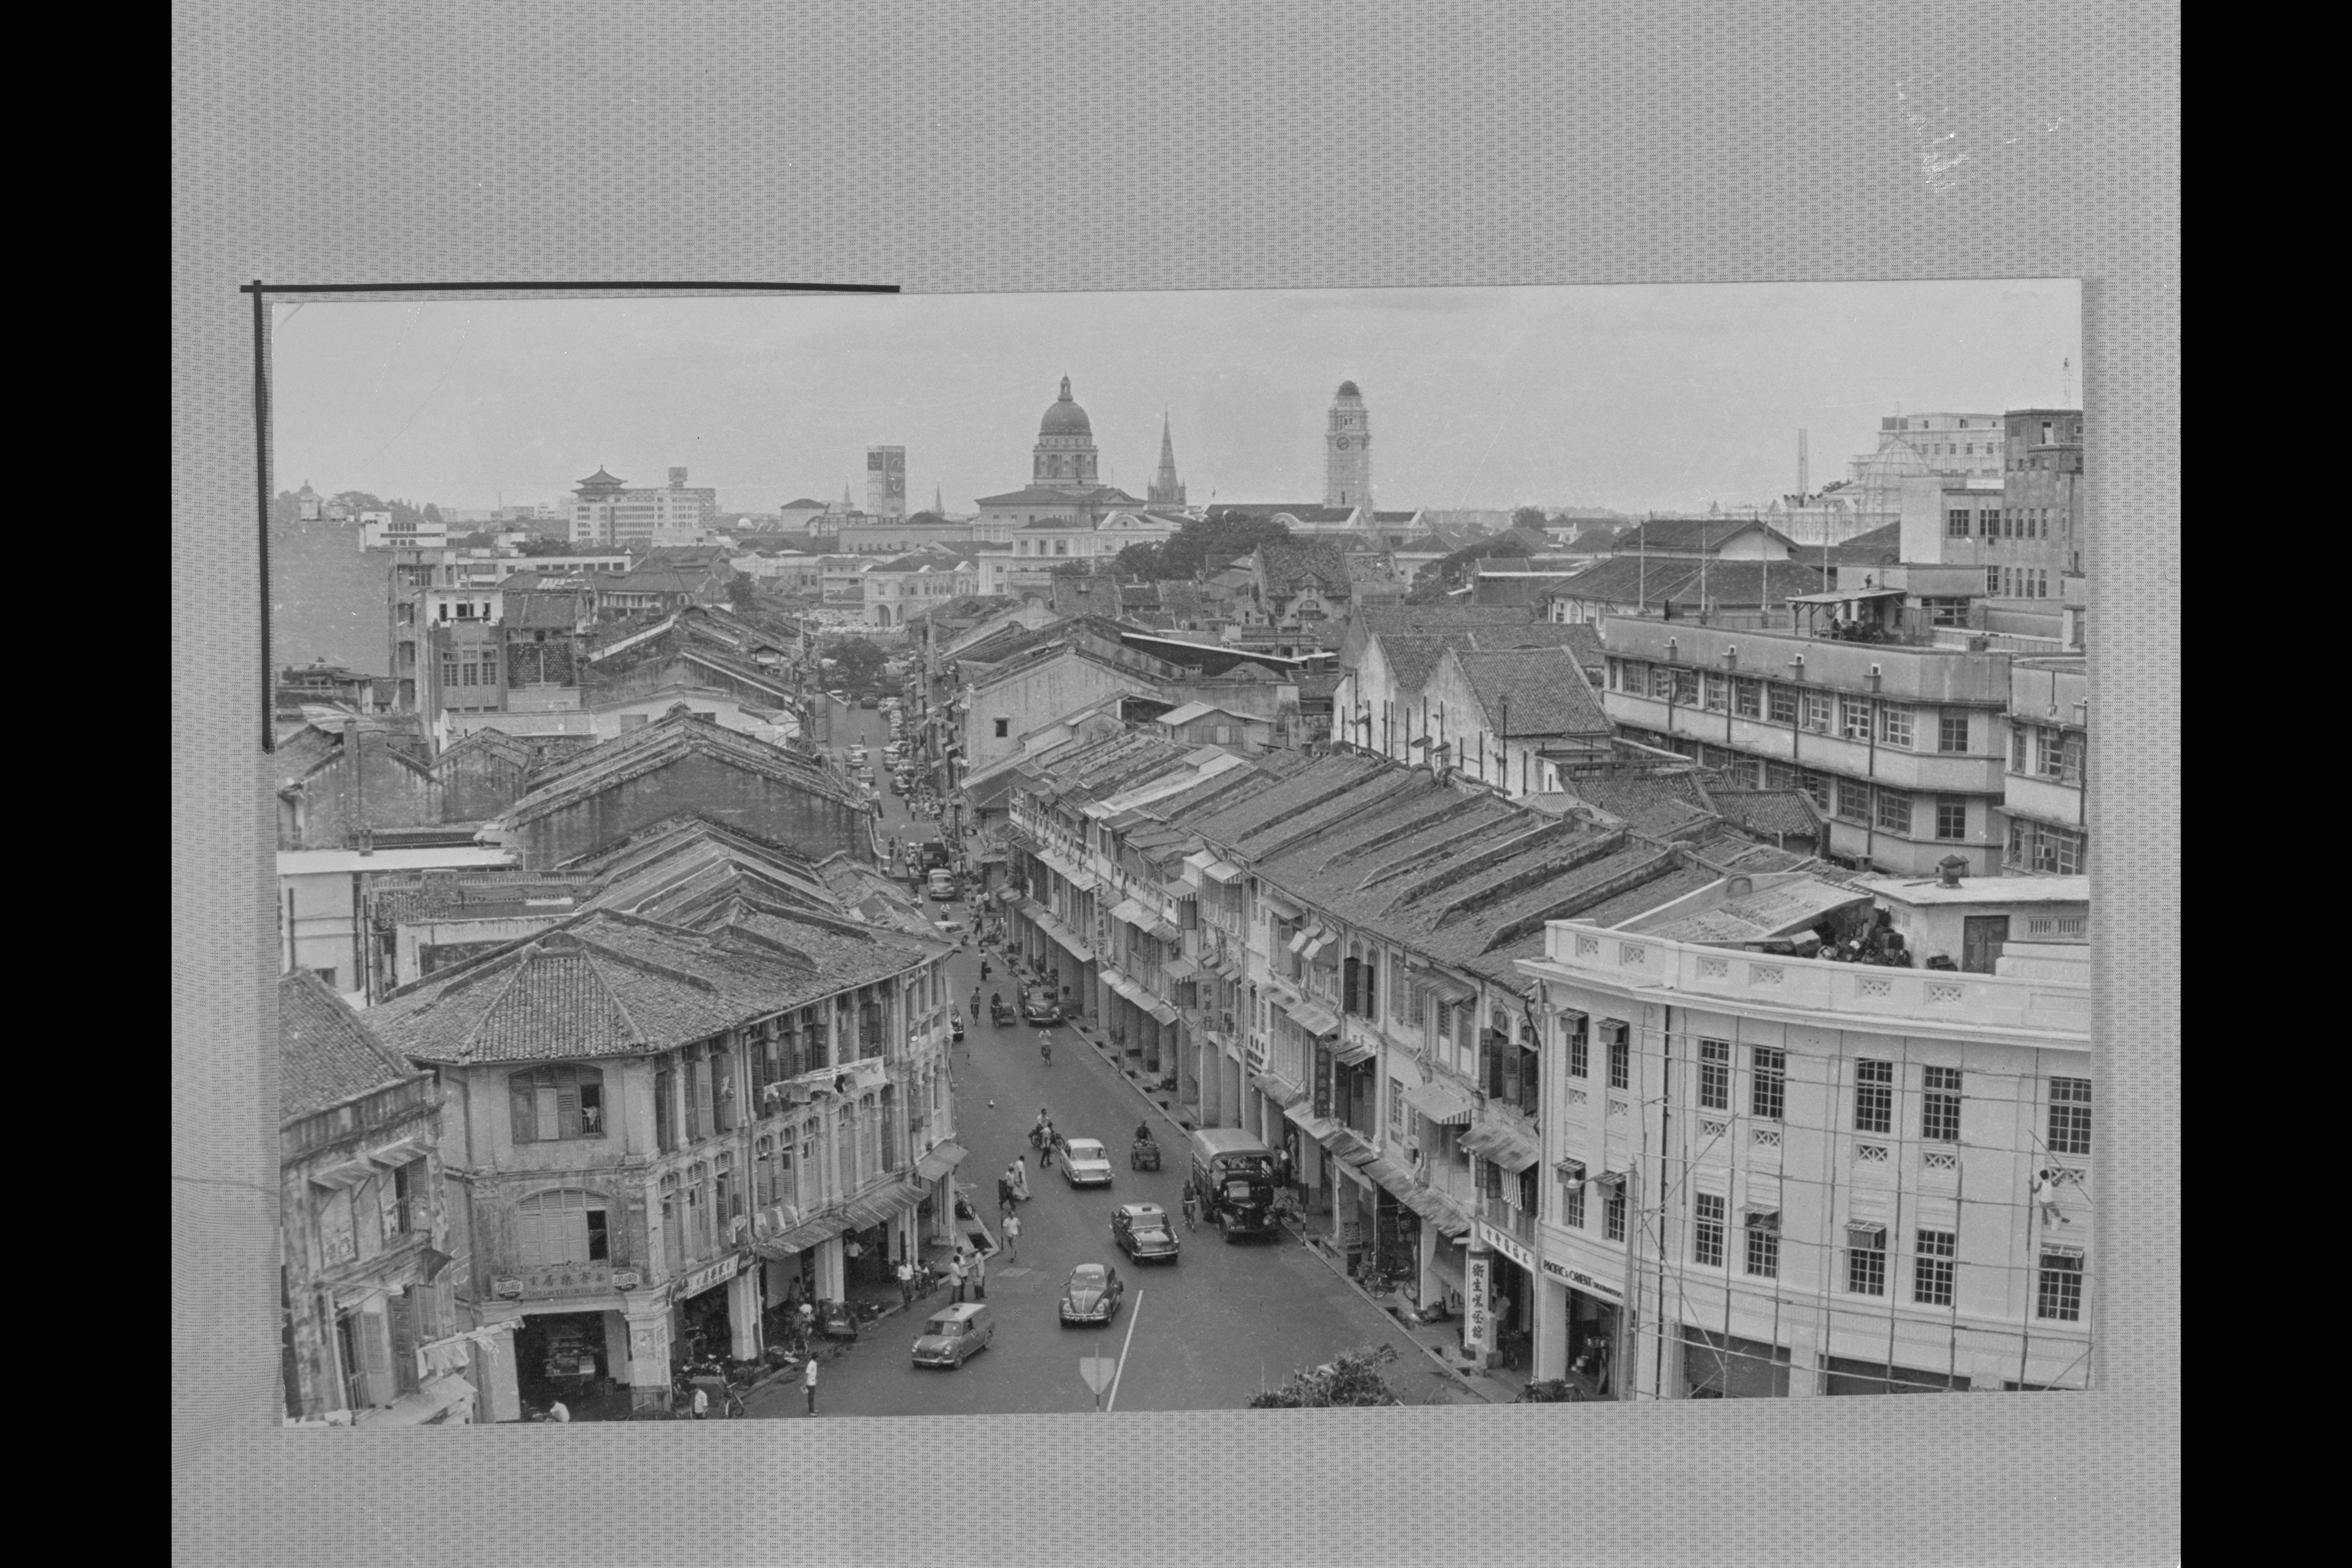 Market Street in the 1970s. Chu Sui Mang Collection, courtesy of National Archives of Singapore